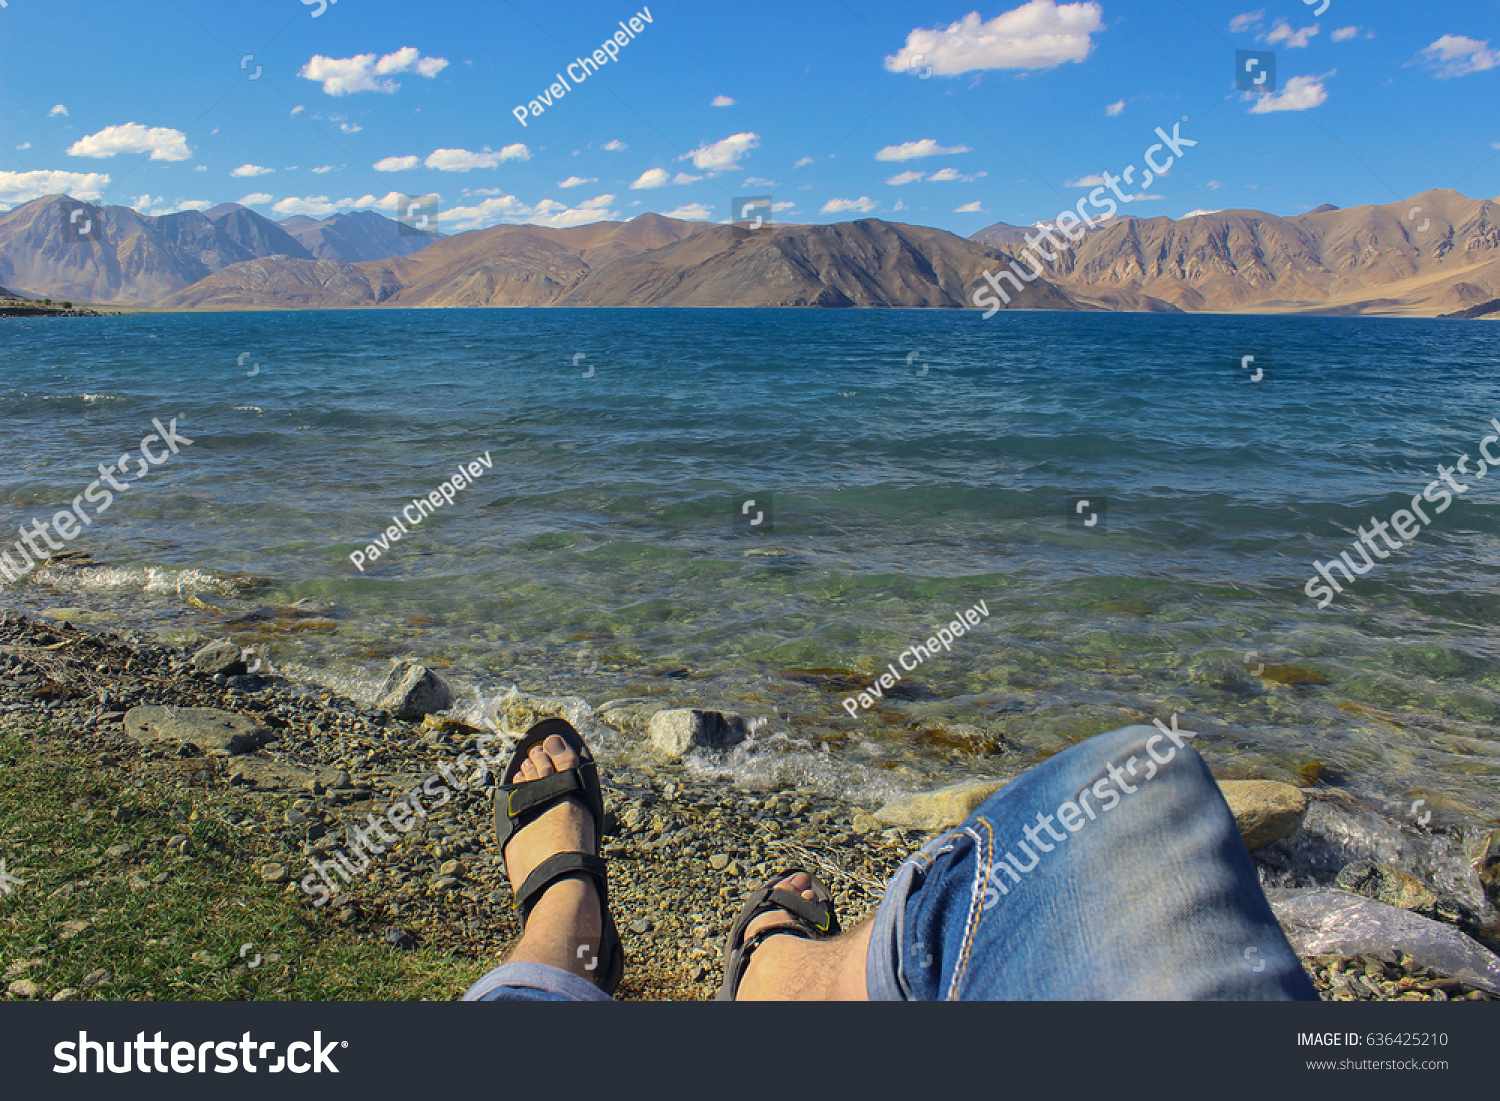 stock-photo-man-resting-on-the-bank-of-b